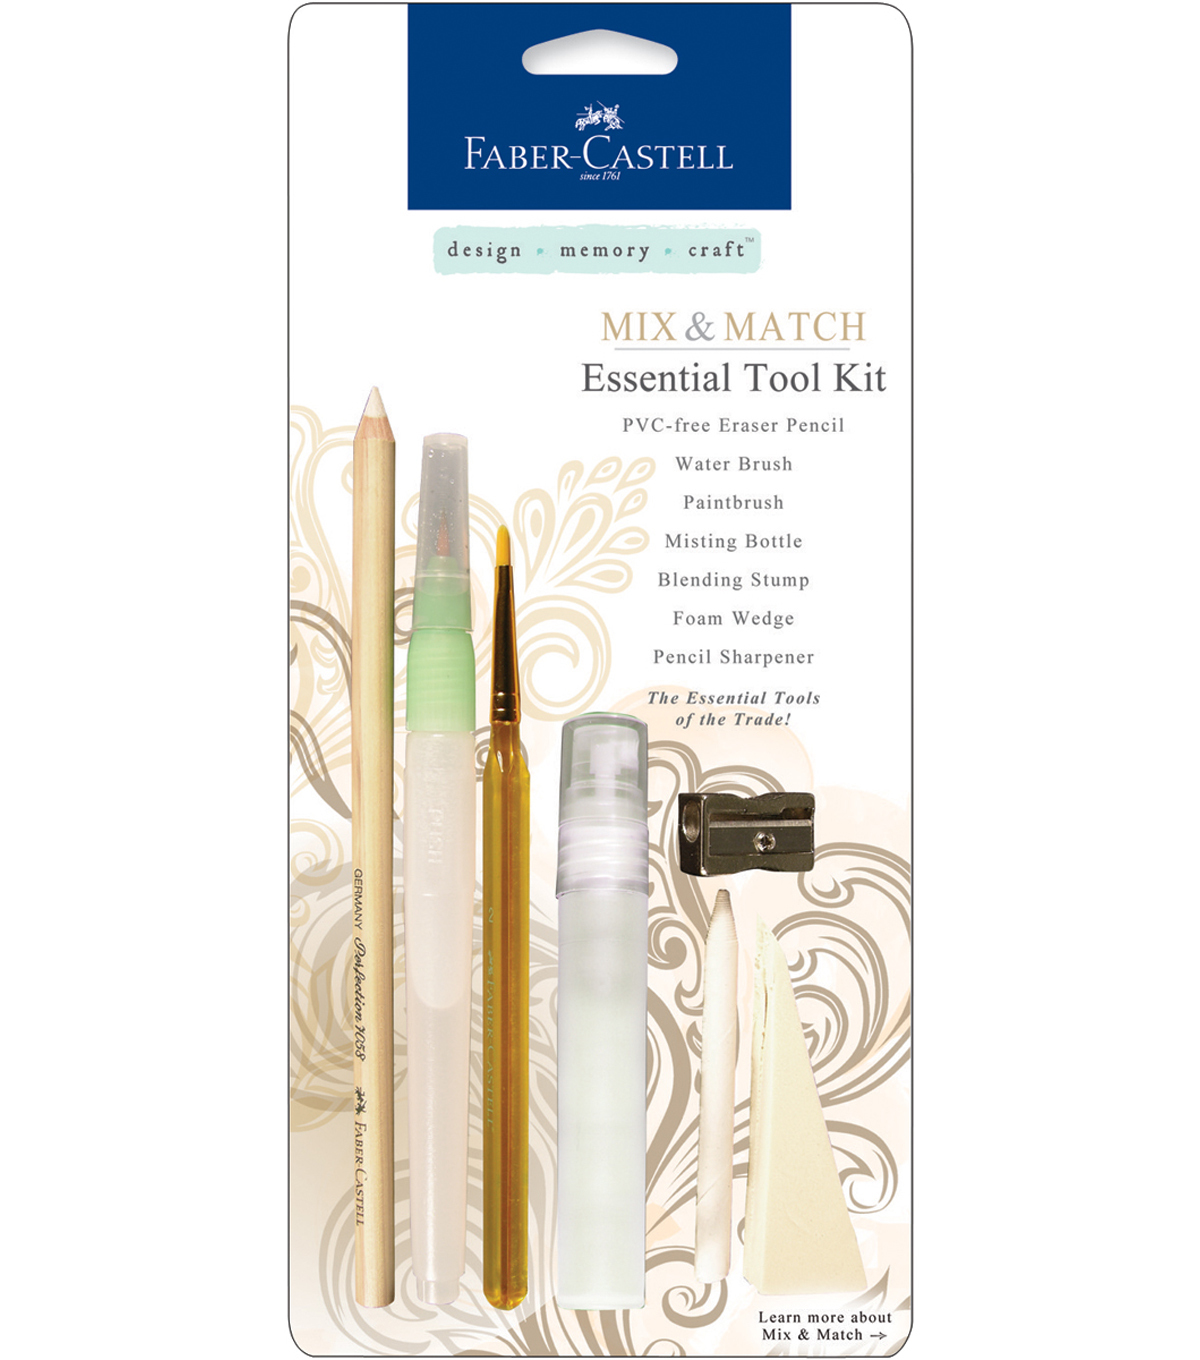 Faber-Castell design-memory-craft Mixed Media Essential Tool Kit